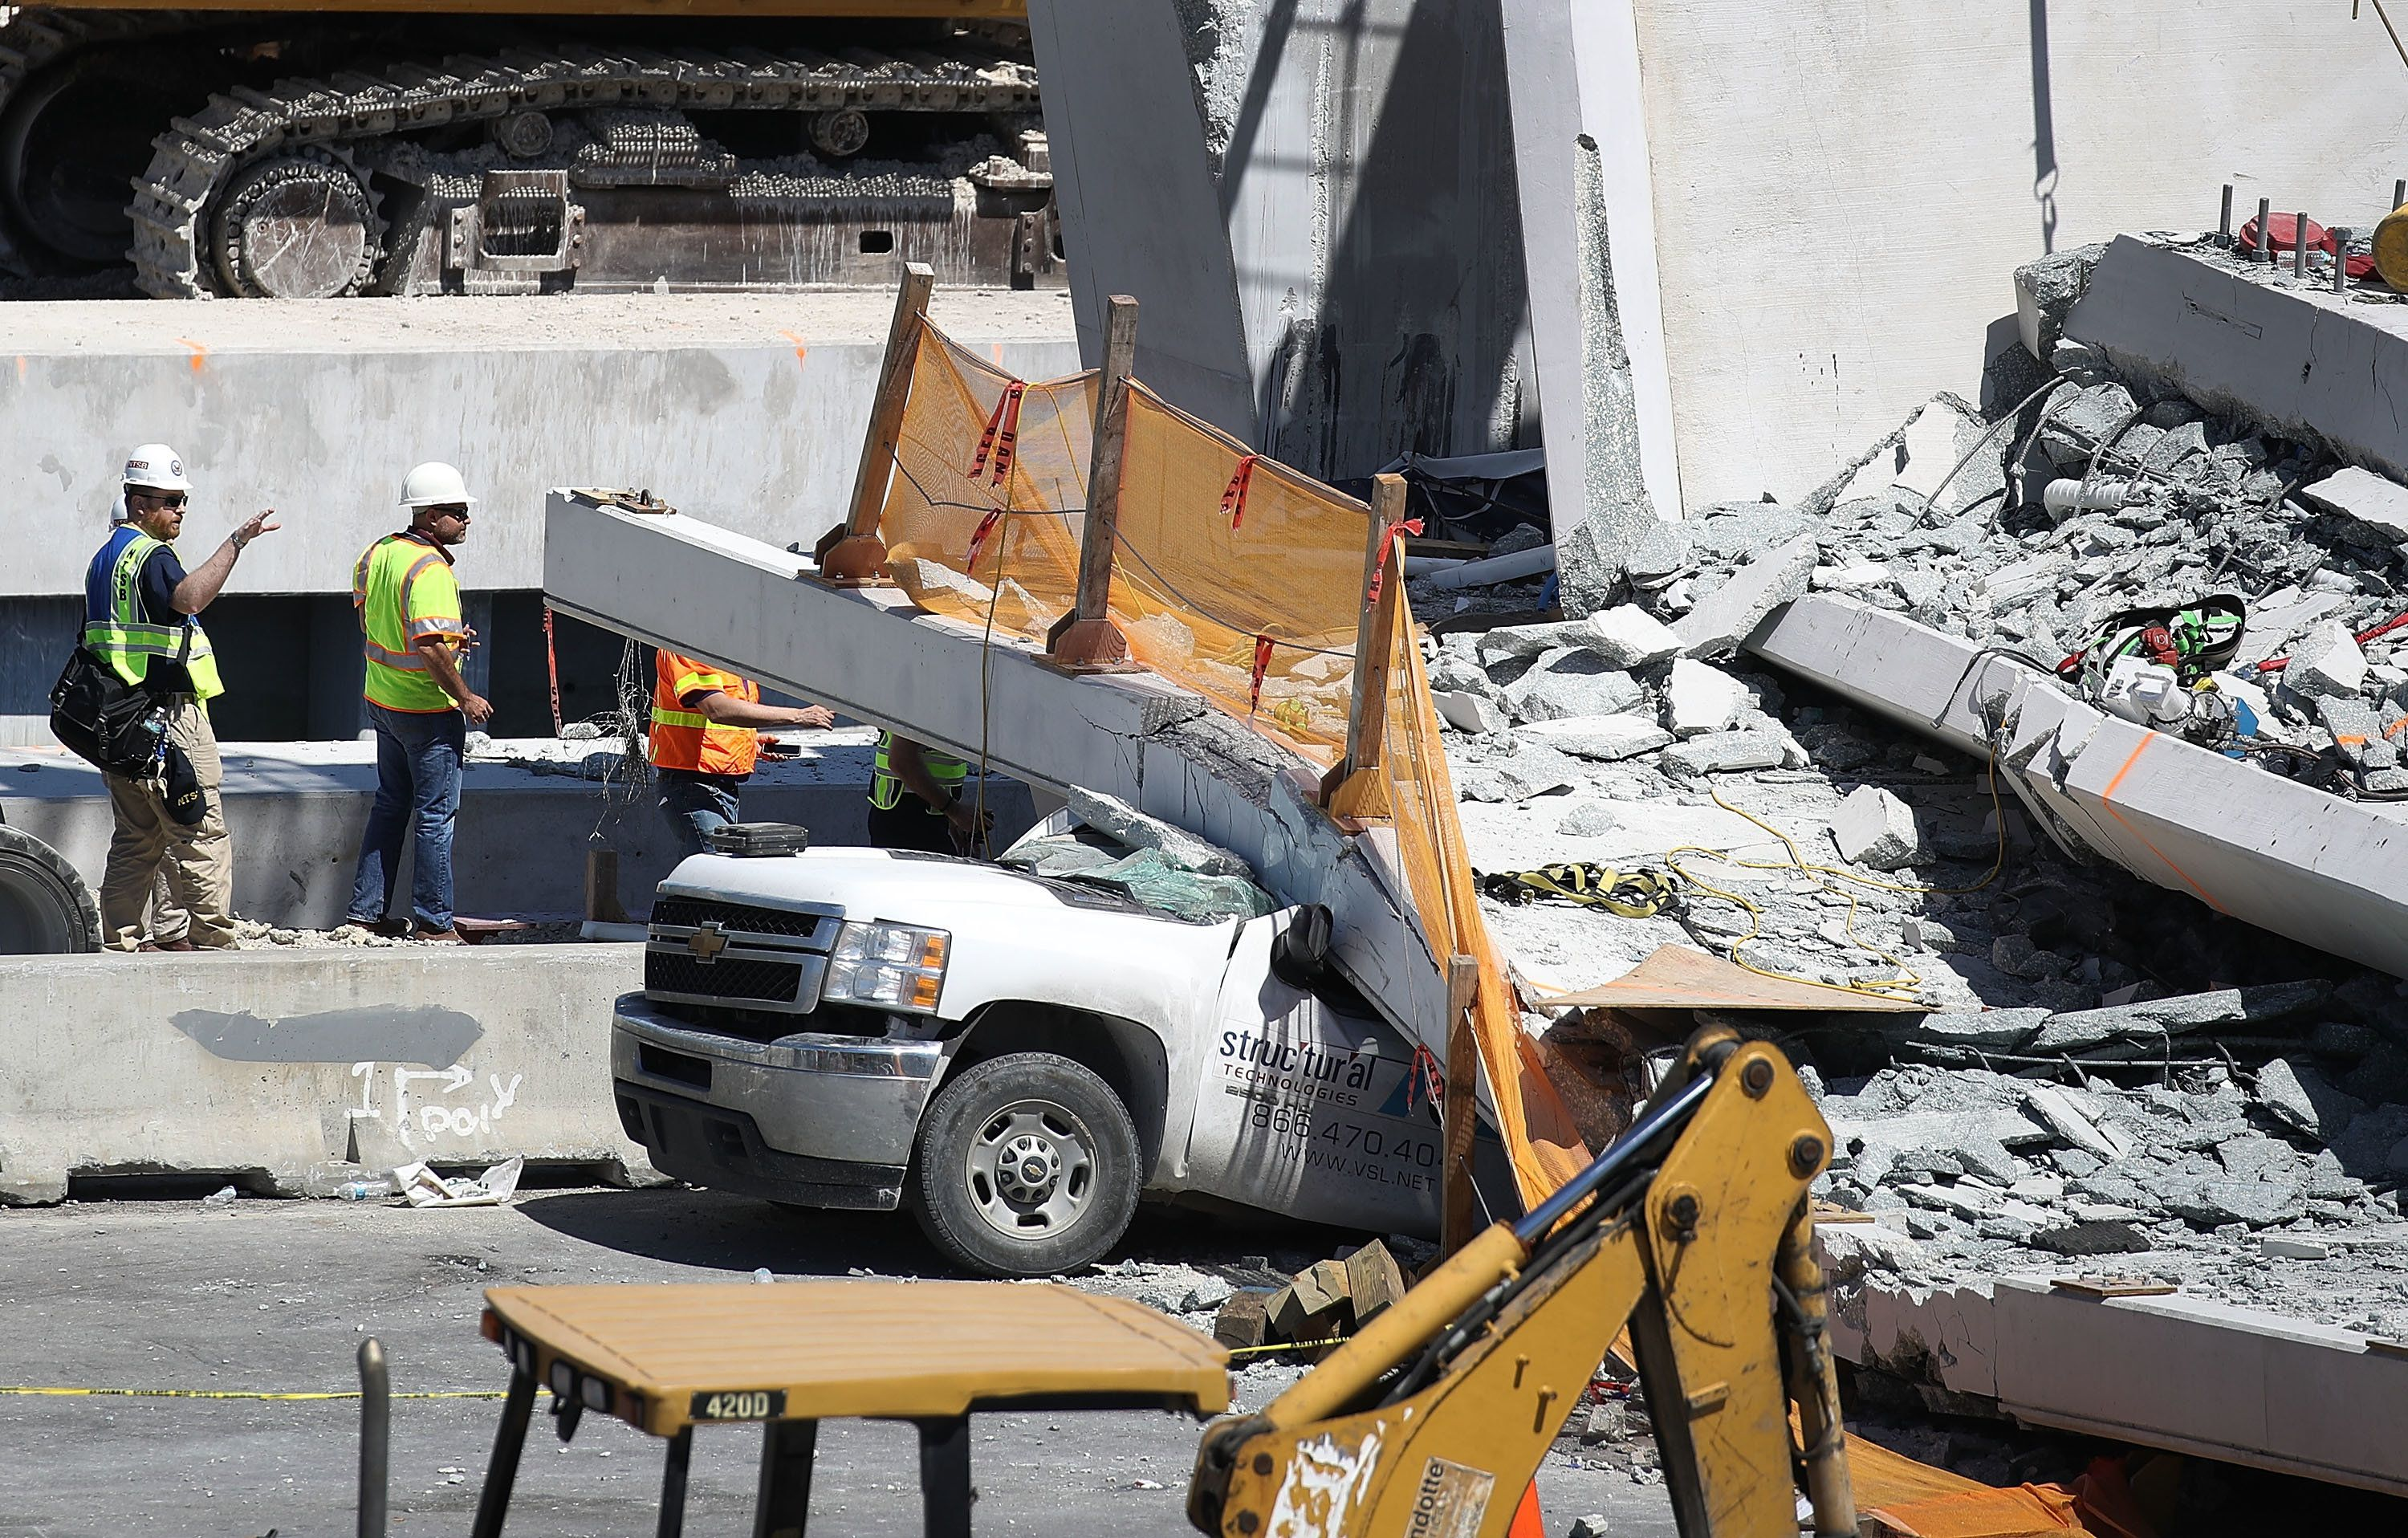 MIAMI, FL - MARCH 16:  Members of the National Transportation Safety Board investigate the scene where a pedestrian bridge collapsed a few days after it was built over southwest 8th street allowing people to bypass the busy street to reach Florida International University on March 16, 2018 in Miami, Florida. Reports indicate that there are six fatalities as a result of the collapse.  (Photo by Joe Raedle/Getty Images)